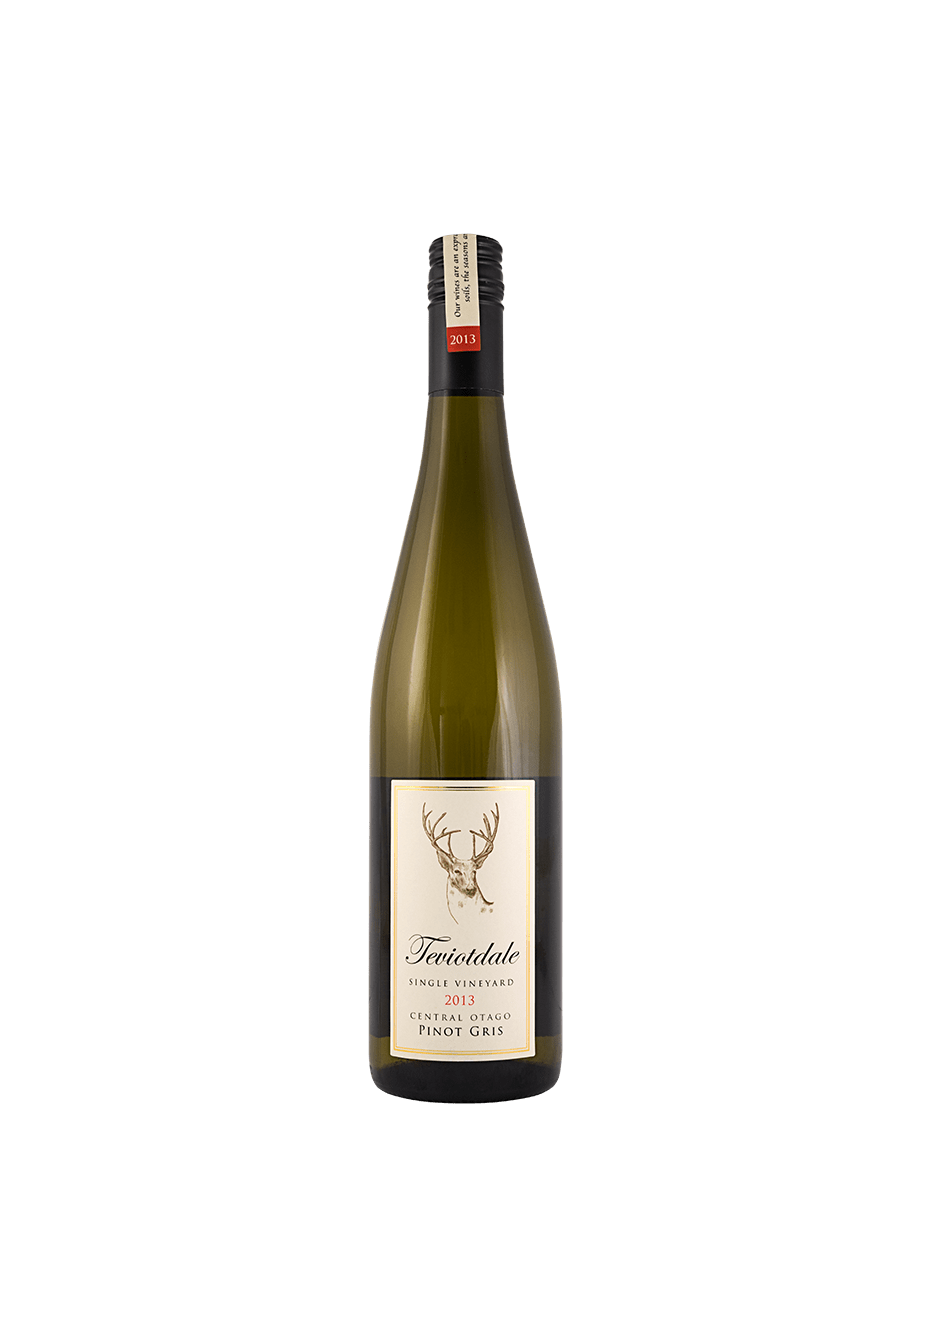 Teviotdale 'Single Vineyard' Central Otago Pinot Gris 2013